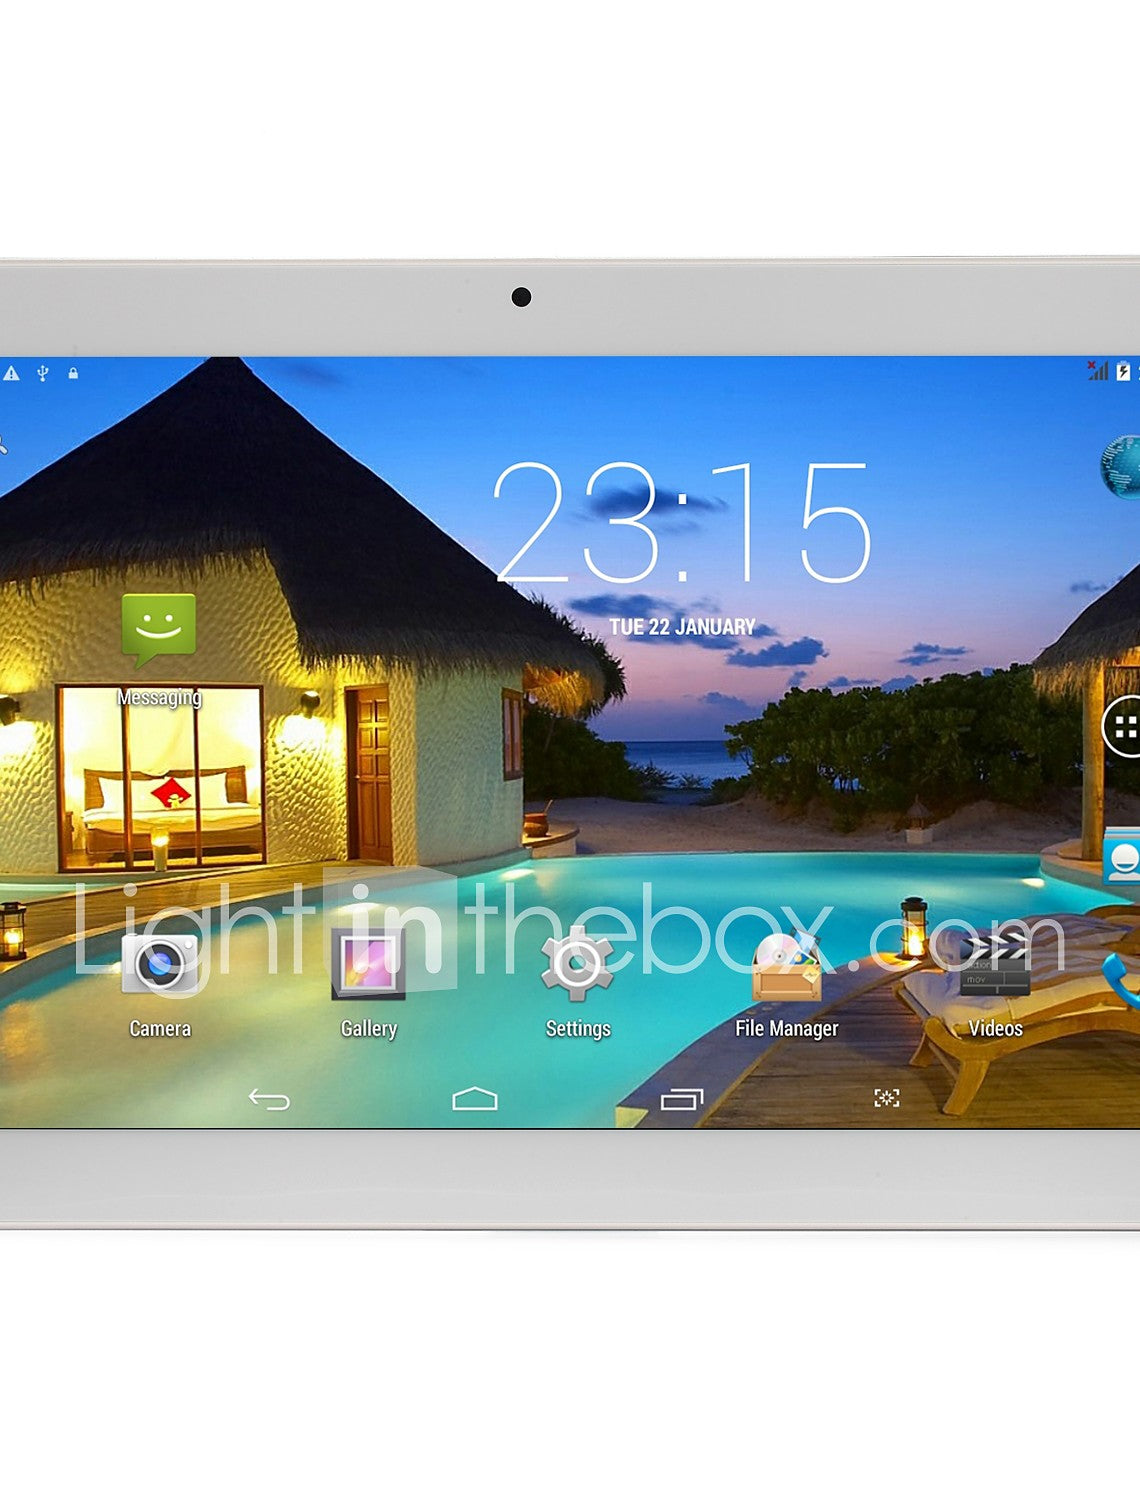 10.1 inch Android Tablet (Android 5.1 1280 x 800 Quad Core 2GB+32GB) / 64 / Mini USB / SIM Card Slot / TF Card slot / 3.5mm Earphone Jack - Edolatry